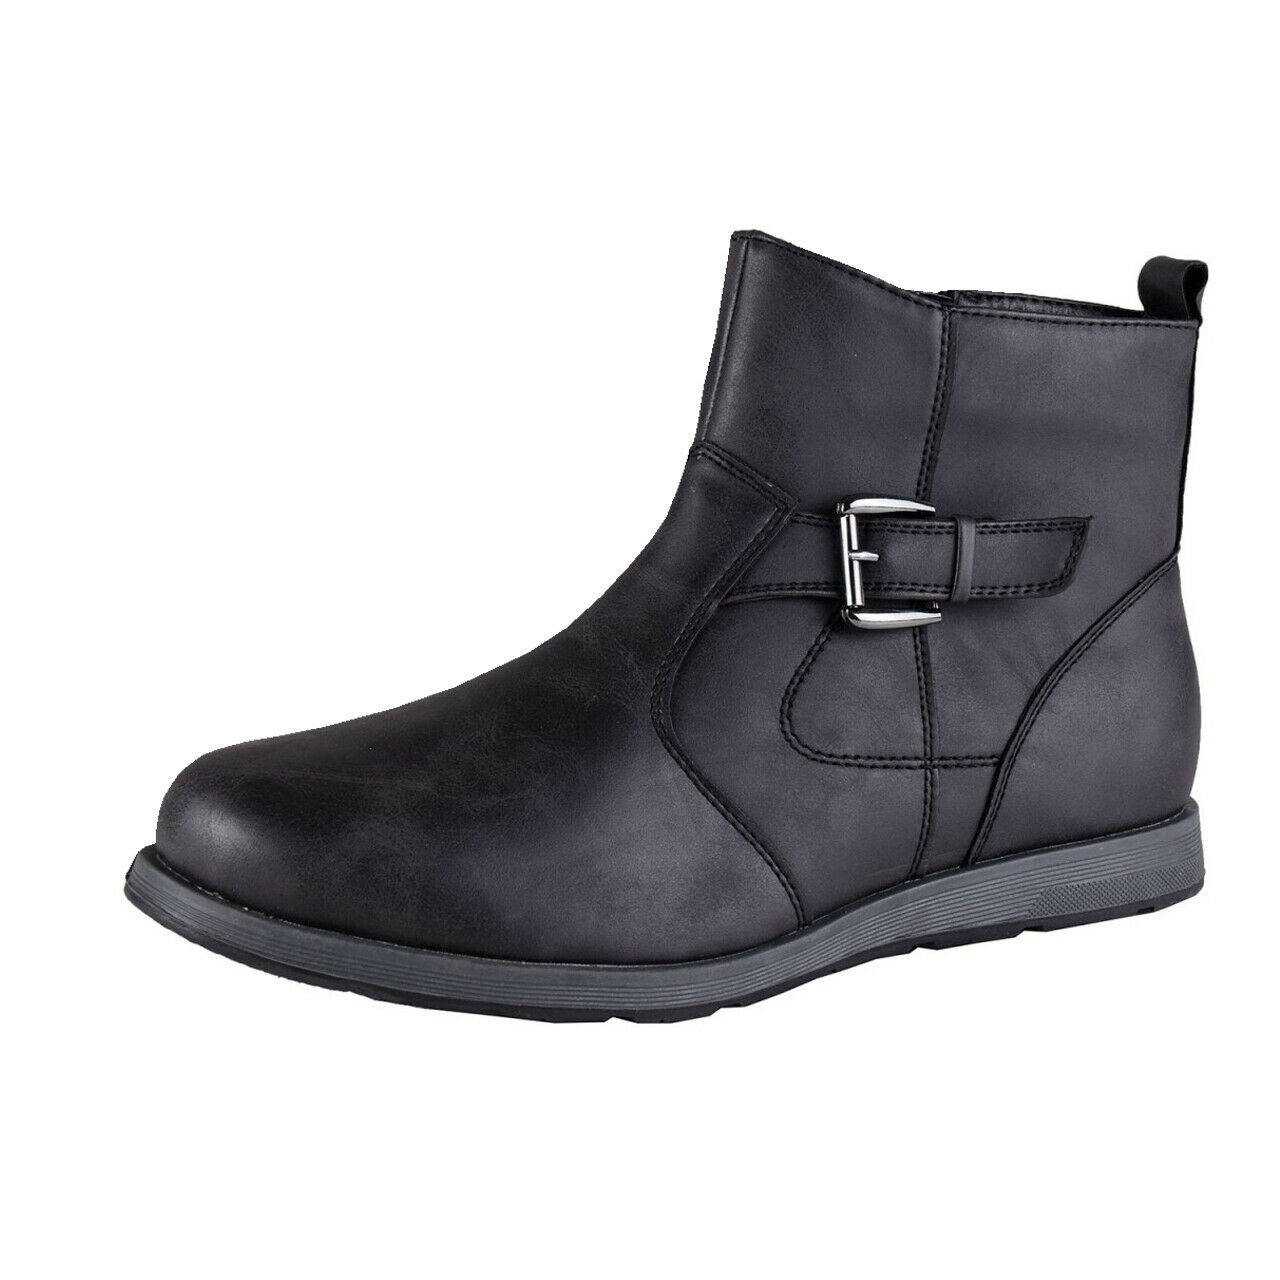 Mario Bucelli Men's Ankle Boots, Boots, Boots, Casual shoes, Sale, Black